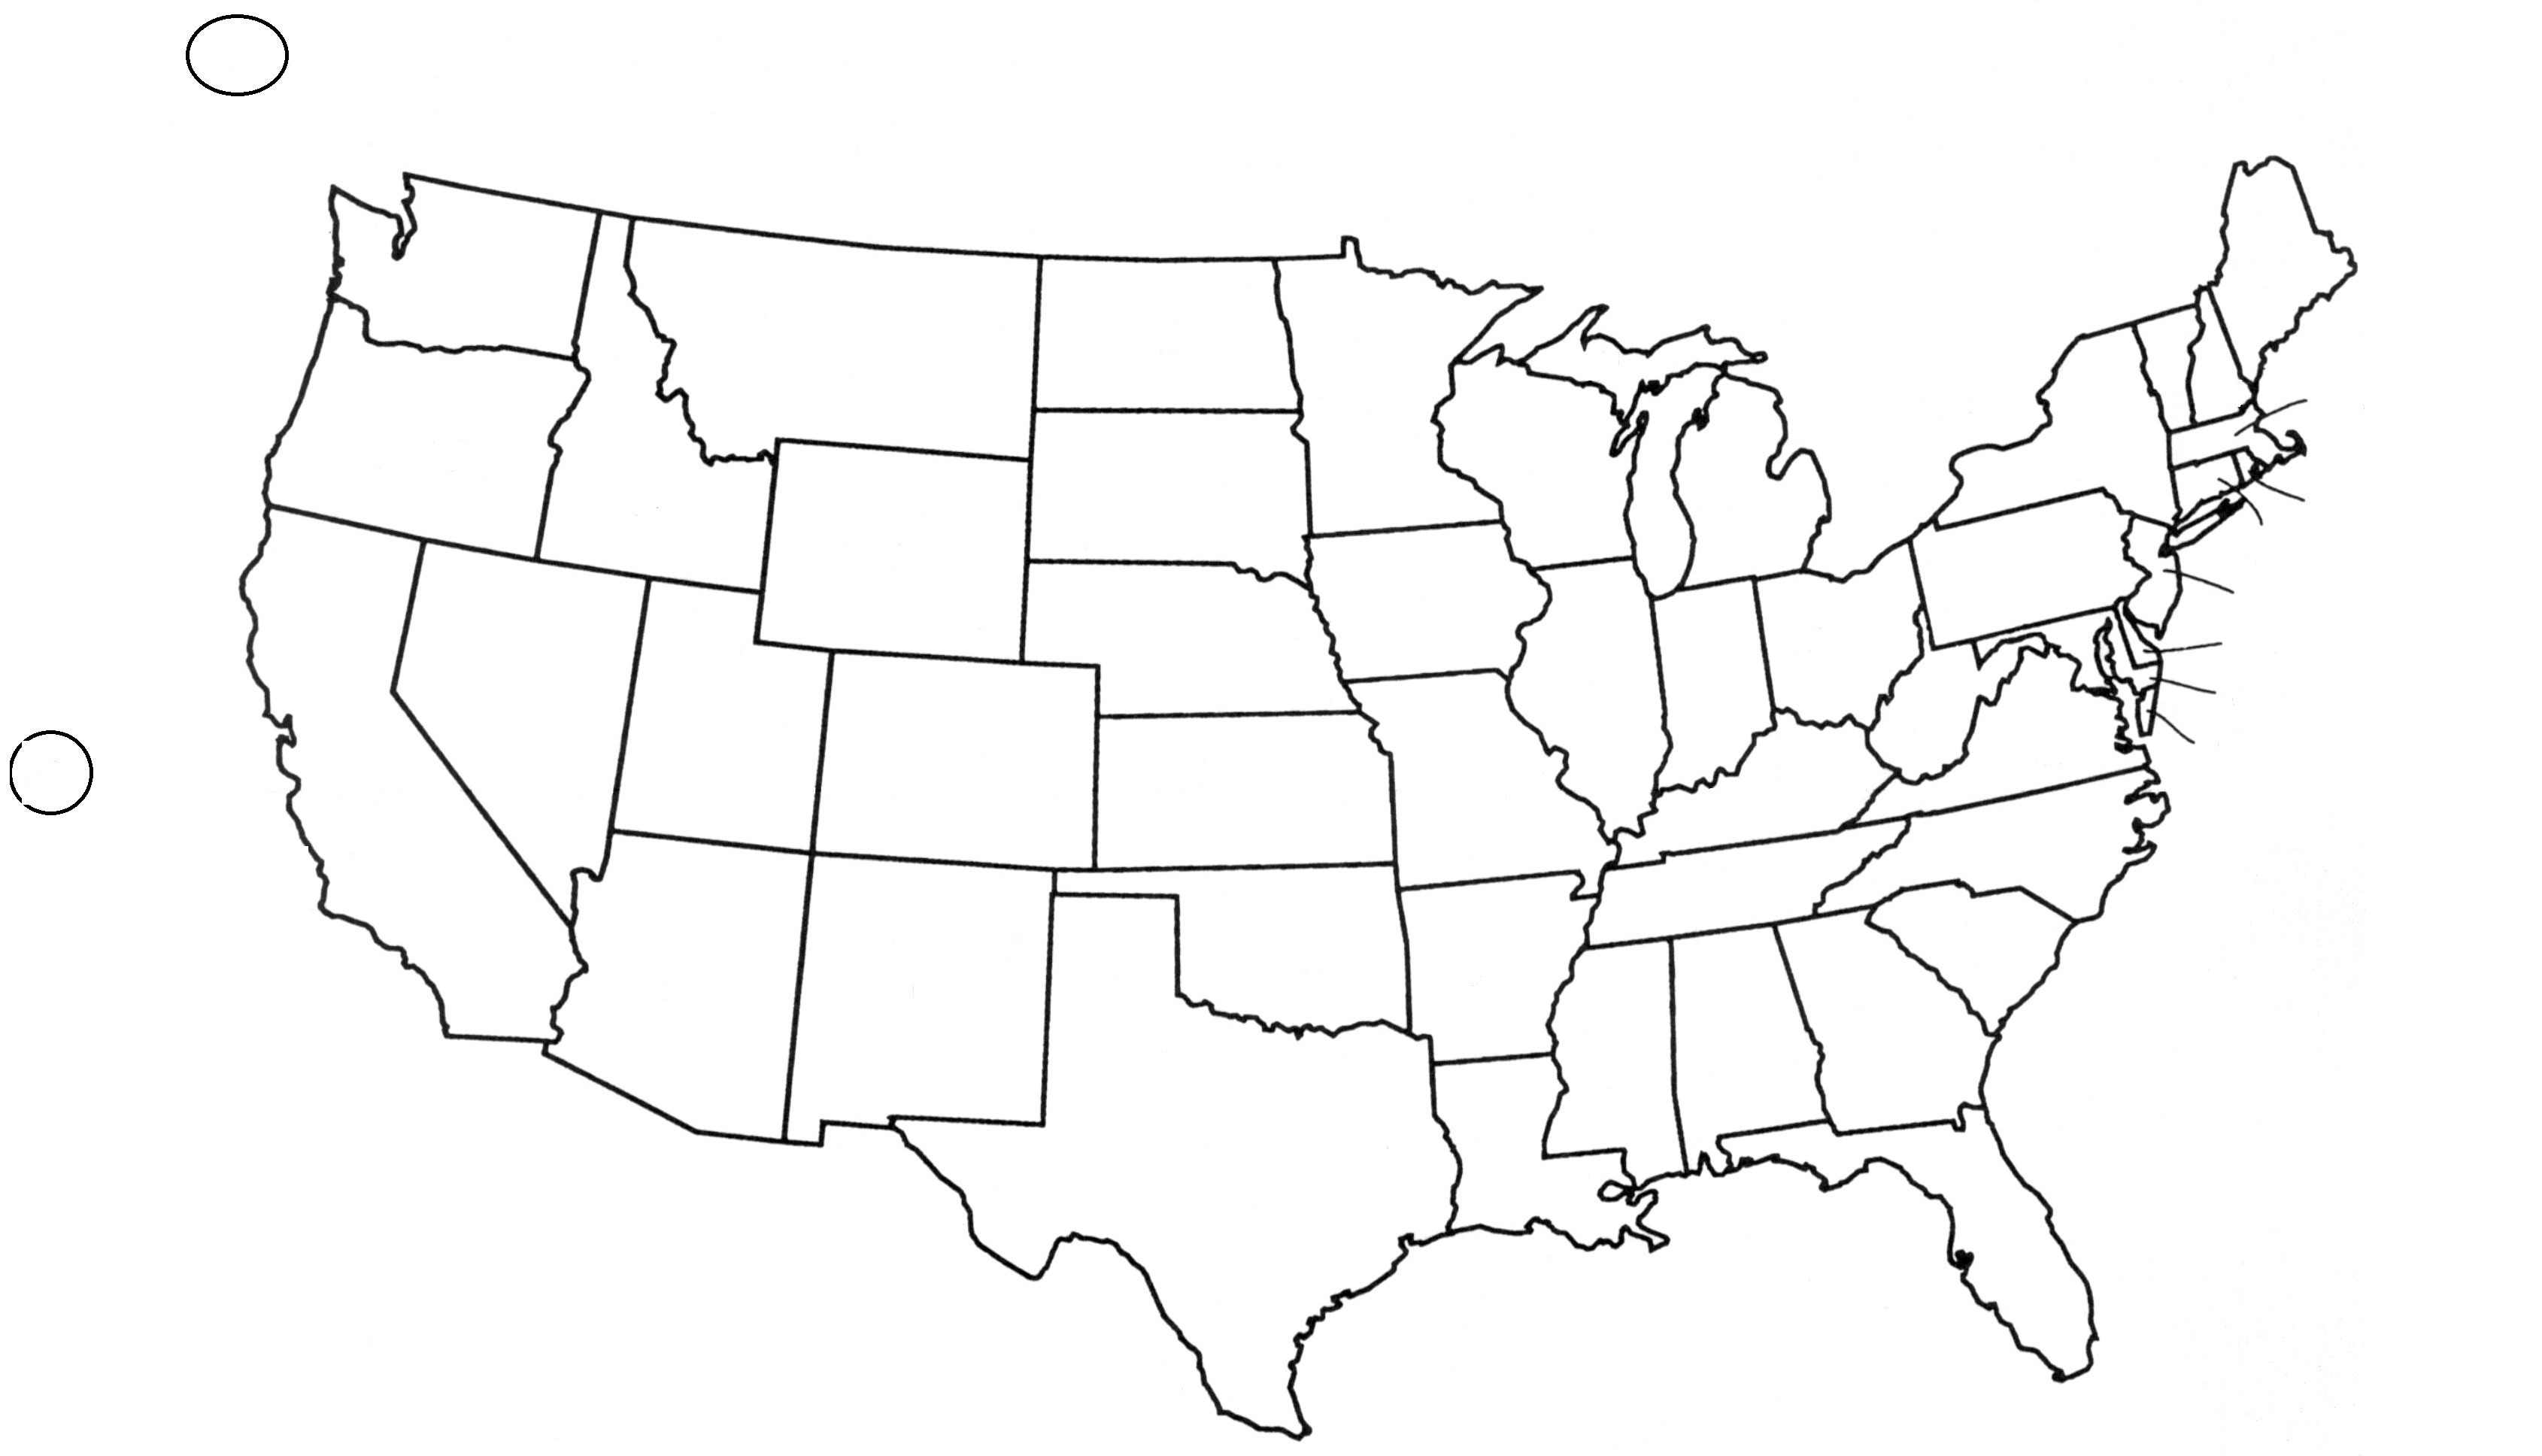 641 Us Map free clipart.